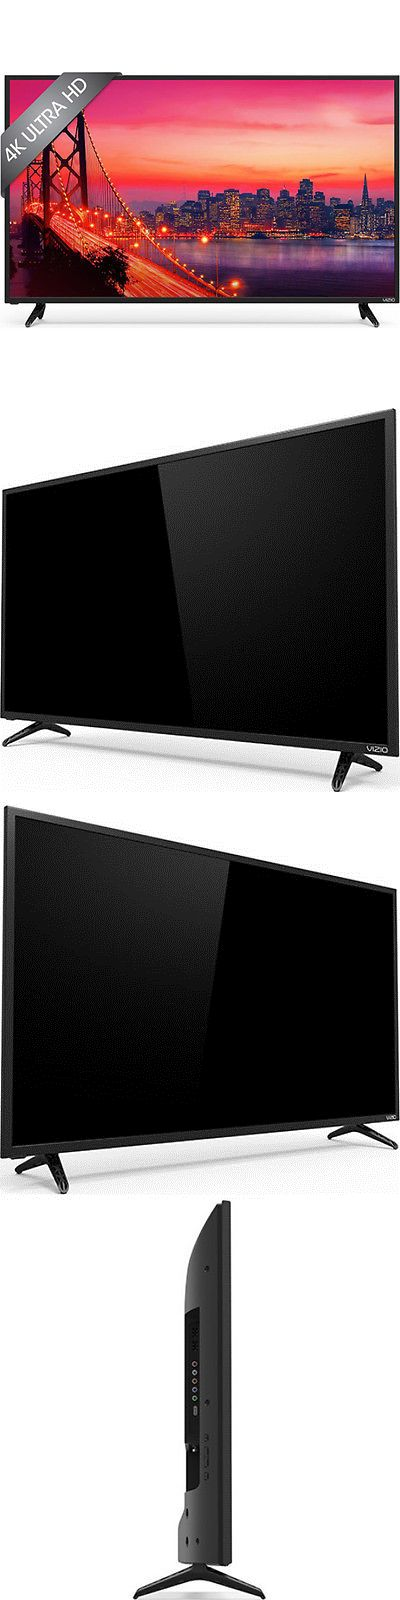 Televisions: Vizio E60u-D3 - 60-Inch 4K Ultra Hd Smartcast E-Series Tv Home Theater Display -> BUY IT NOW ONLY: $899 on eBay!